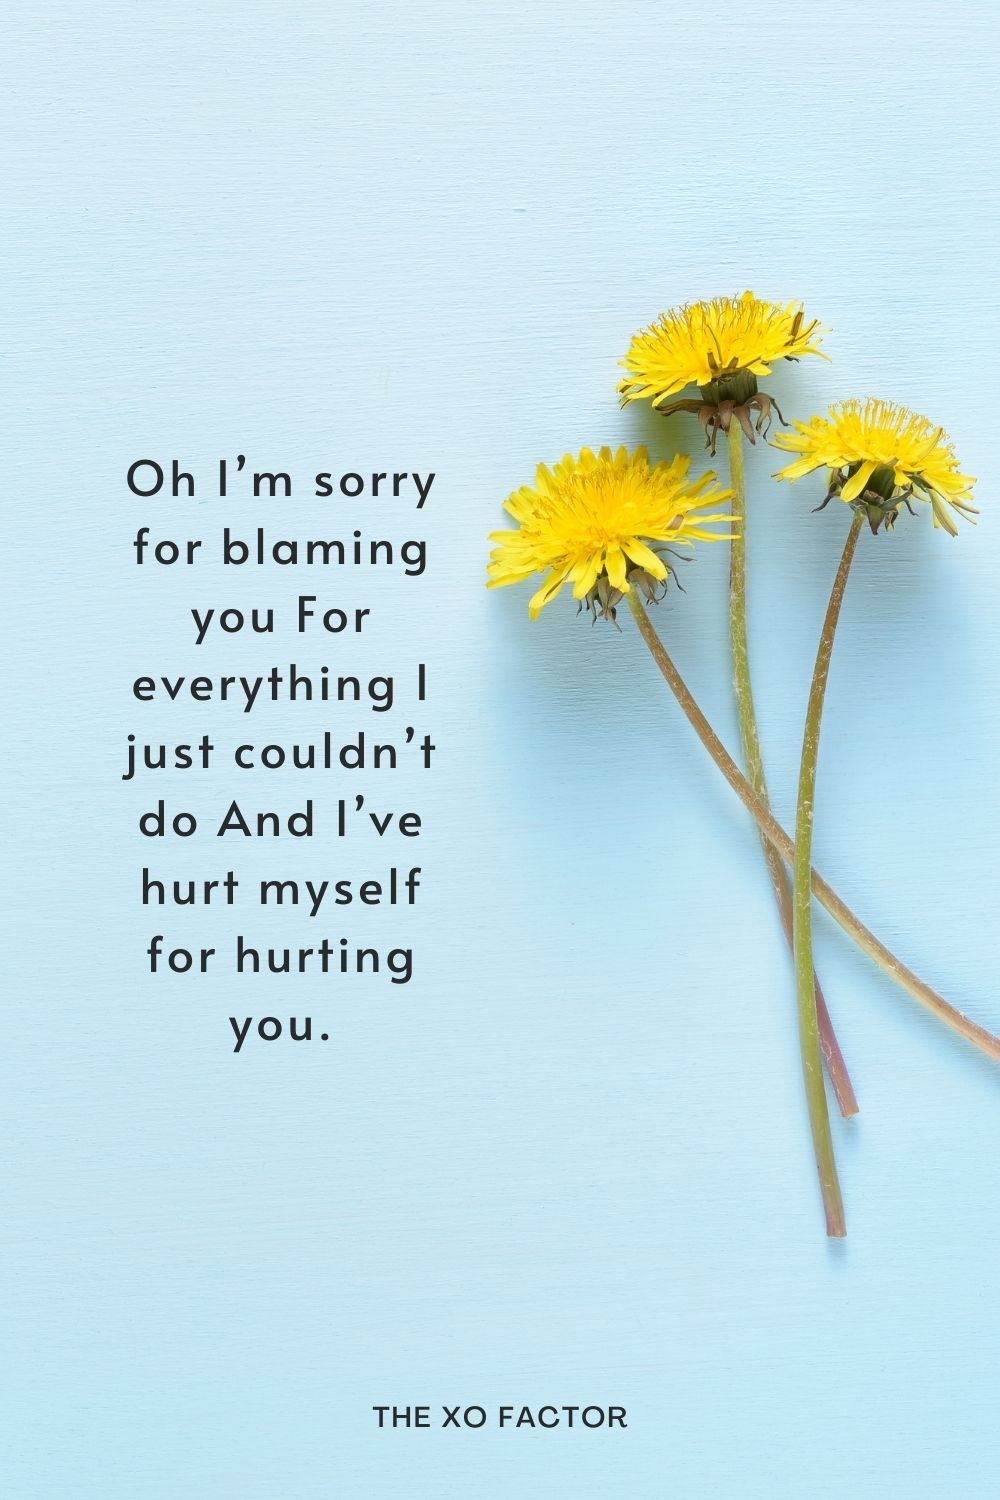 Oh I'm sorry for blaming you For everything I just couldn't do And I've hurt myself for hurting you.